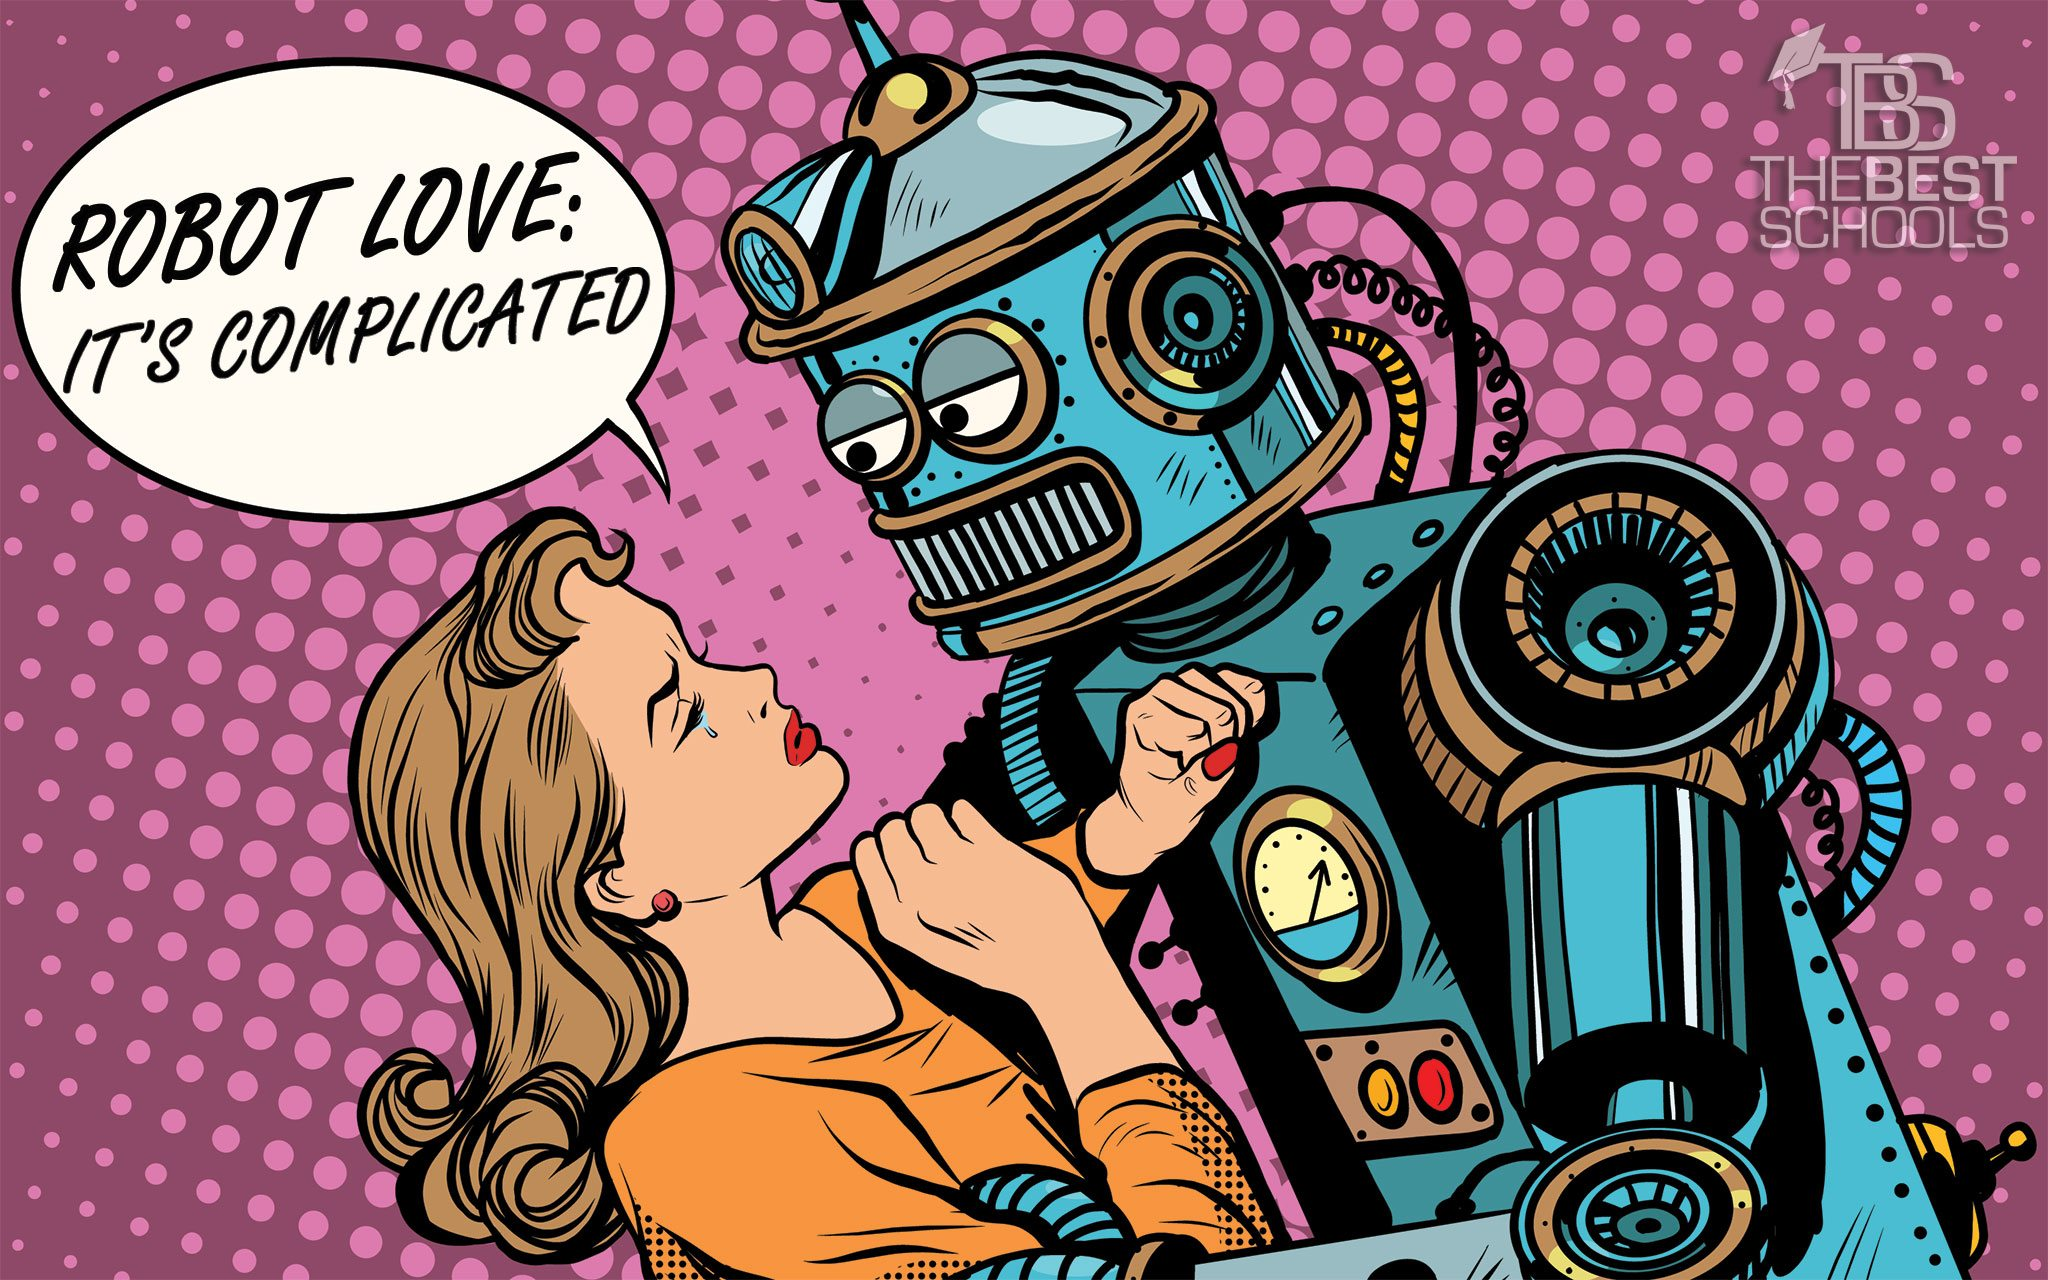 Robot love photo